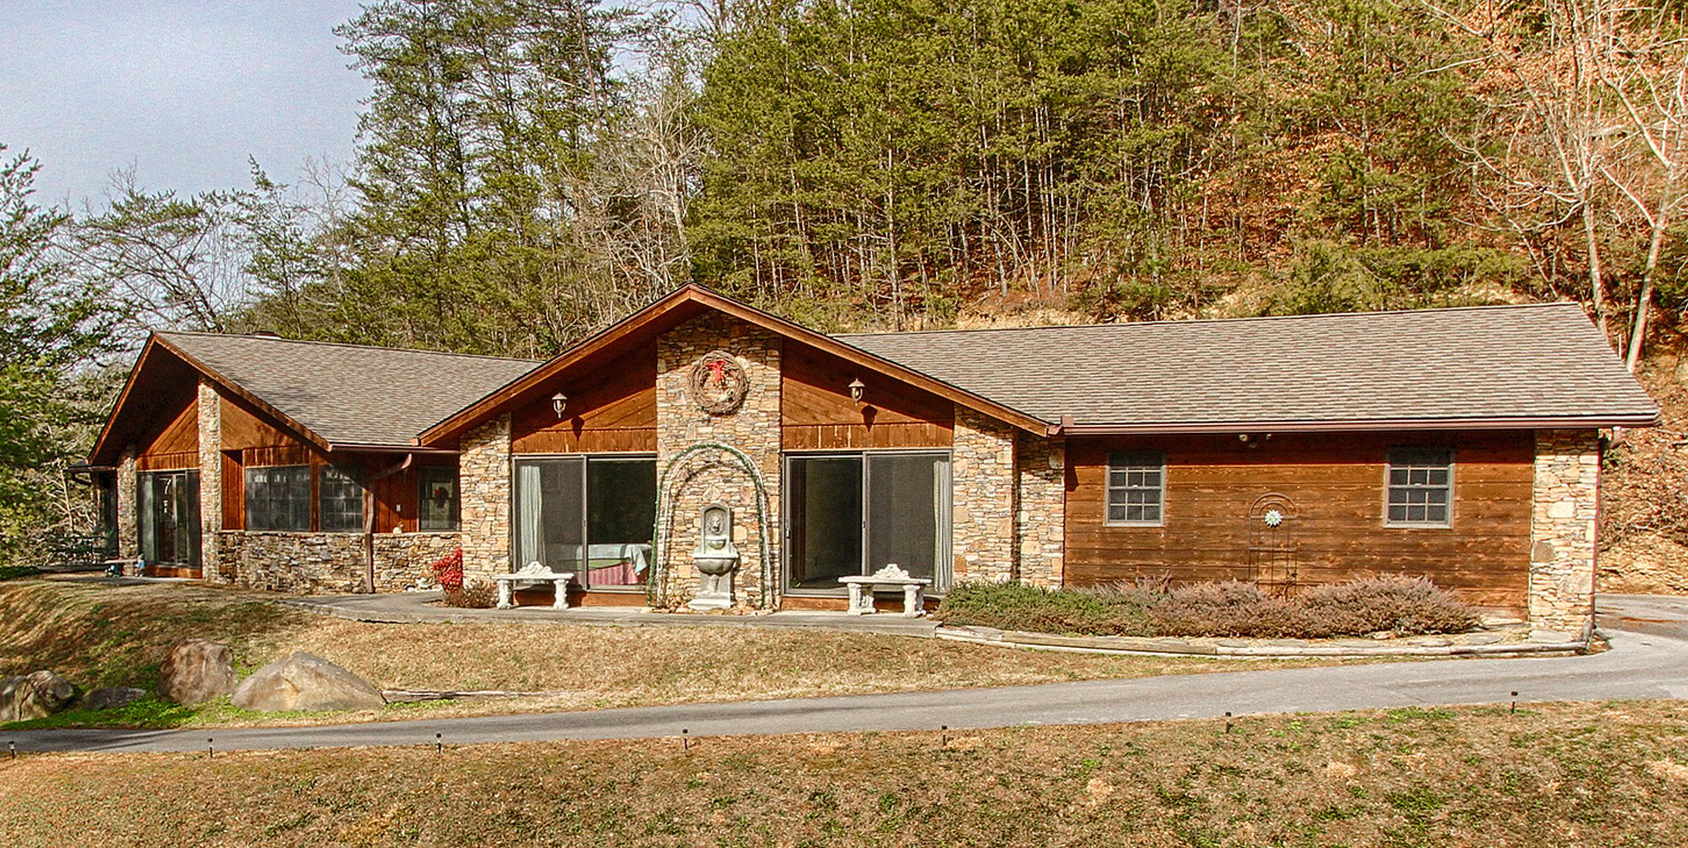 Single Family Home for Sale at Golf Course Cabin in Cobbly Nob 202 Golf Creek Road Gatlinburg, Tennessee 37738 United States